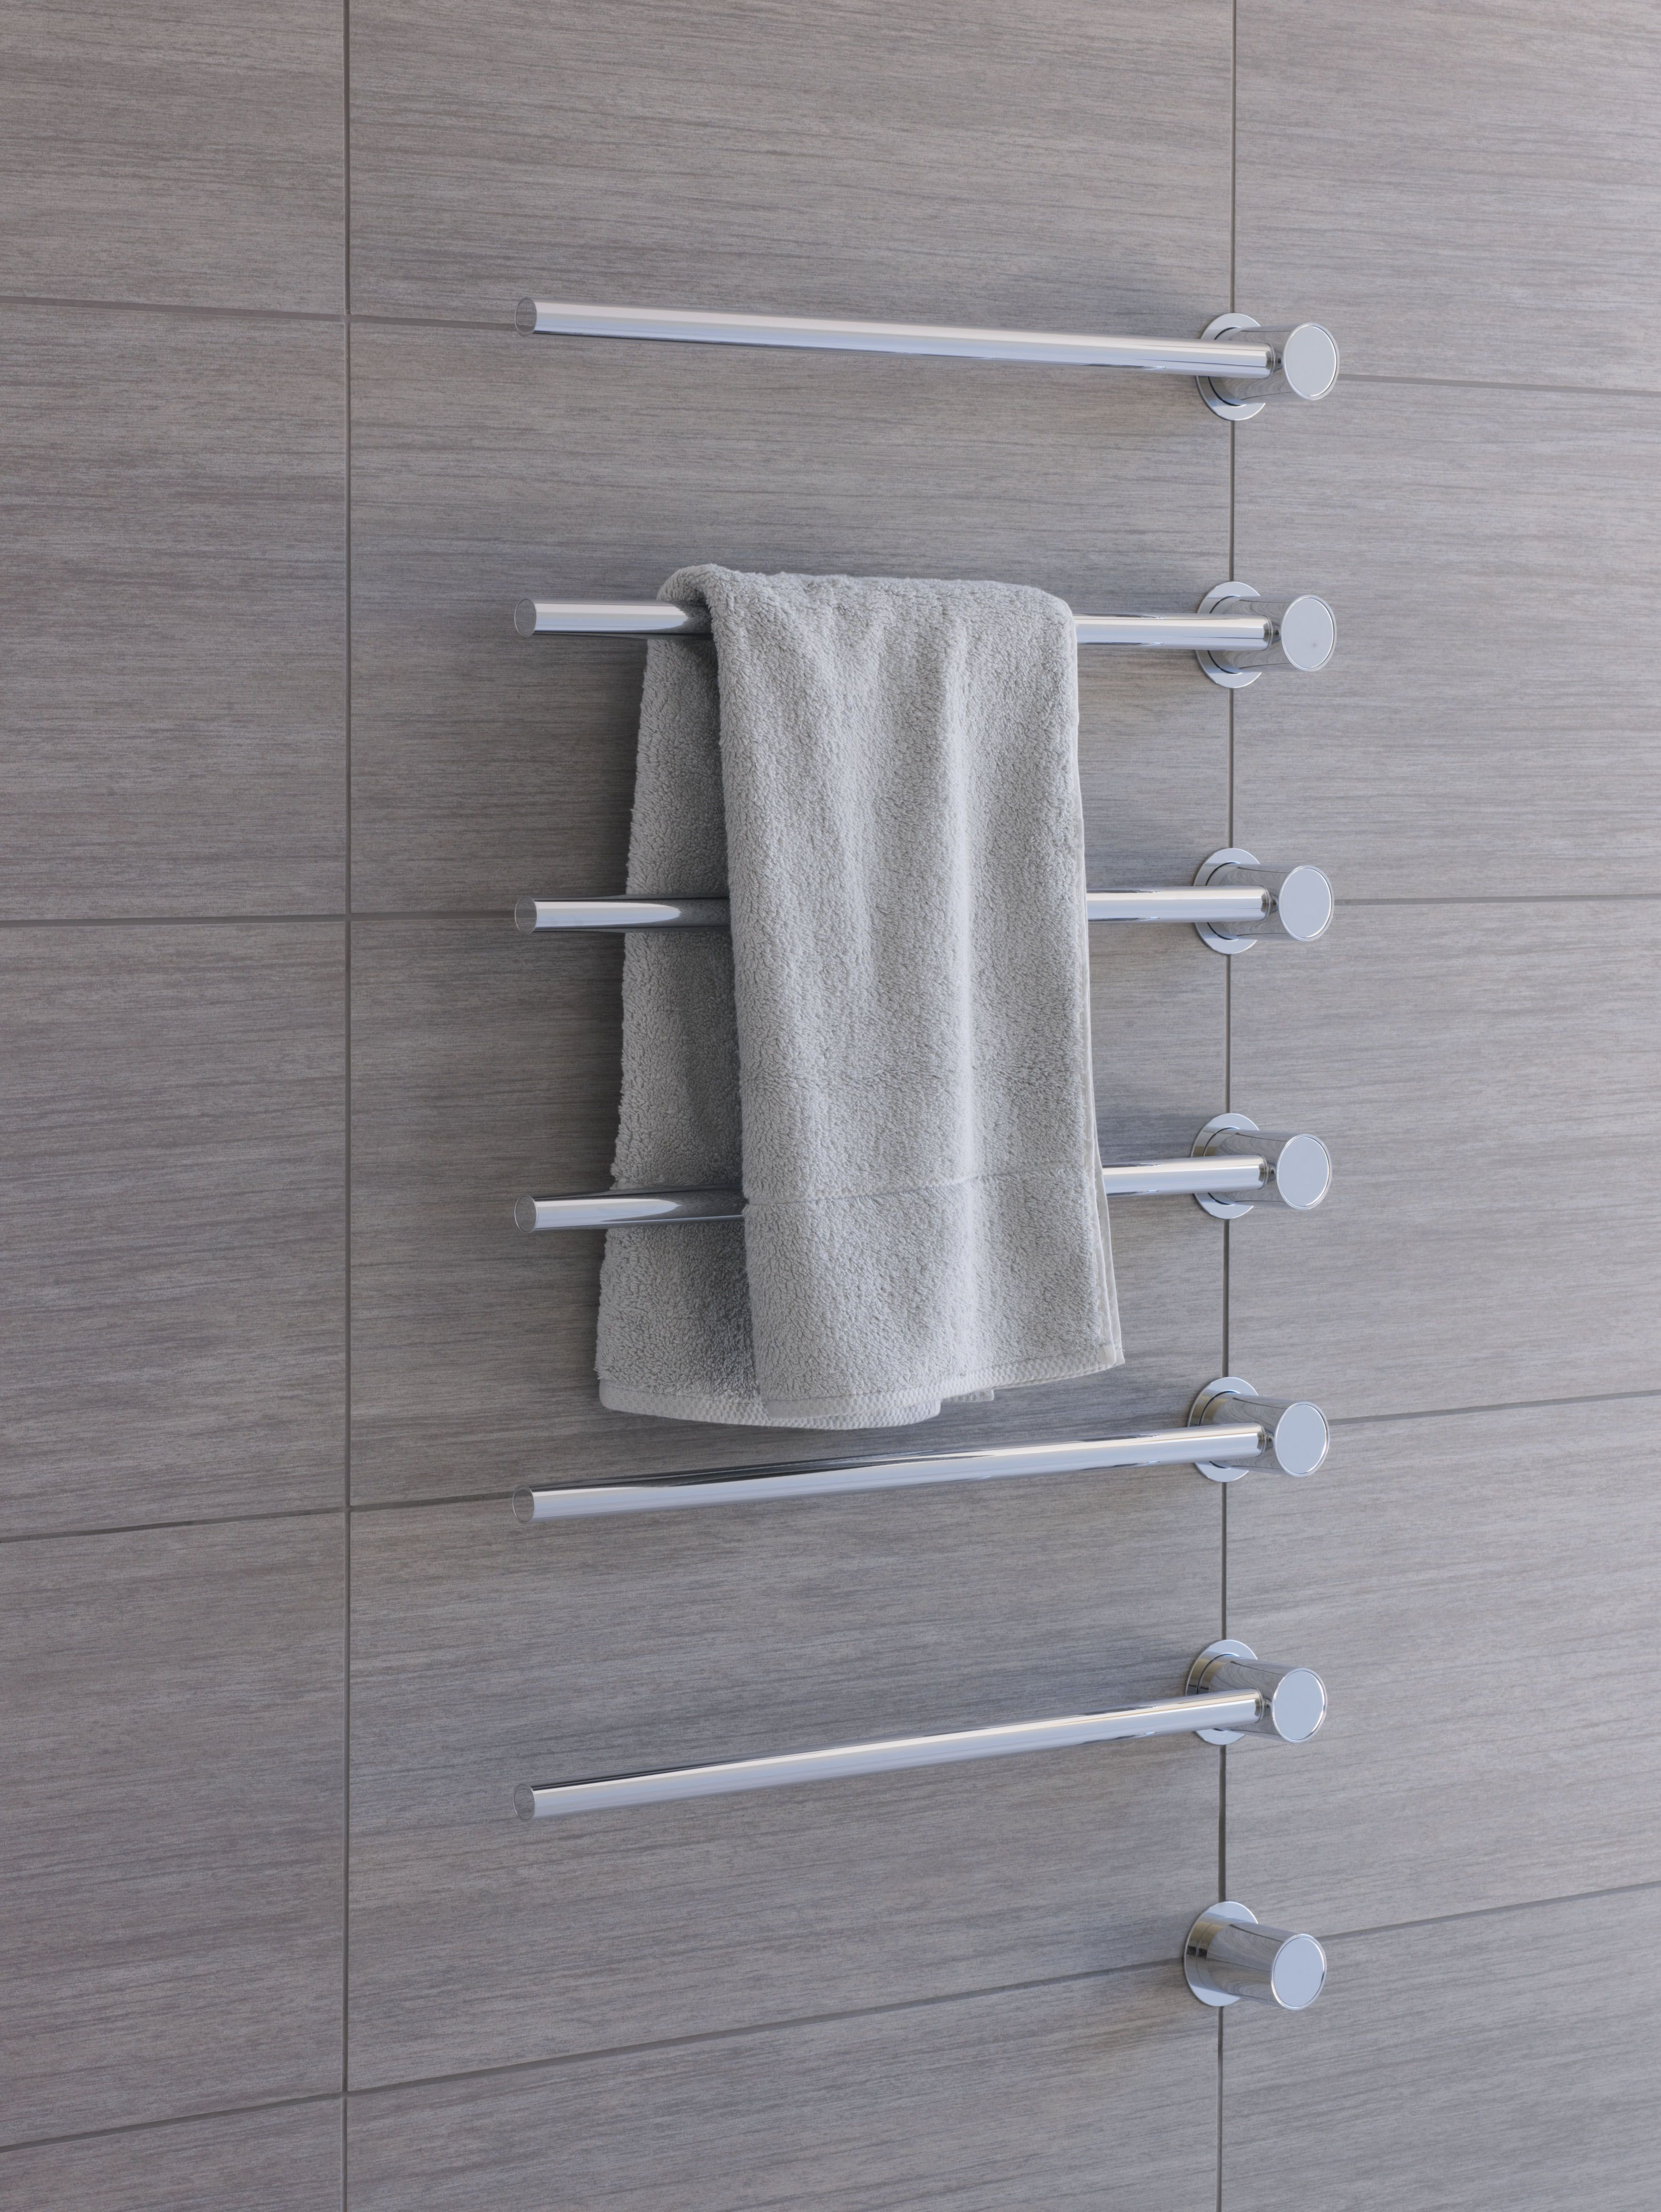 Pin By Rhiannon Schroth On Architectural Products Heated Towel Rack Towel Warmer Modern Towels